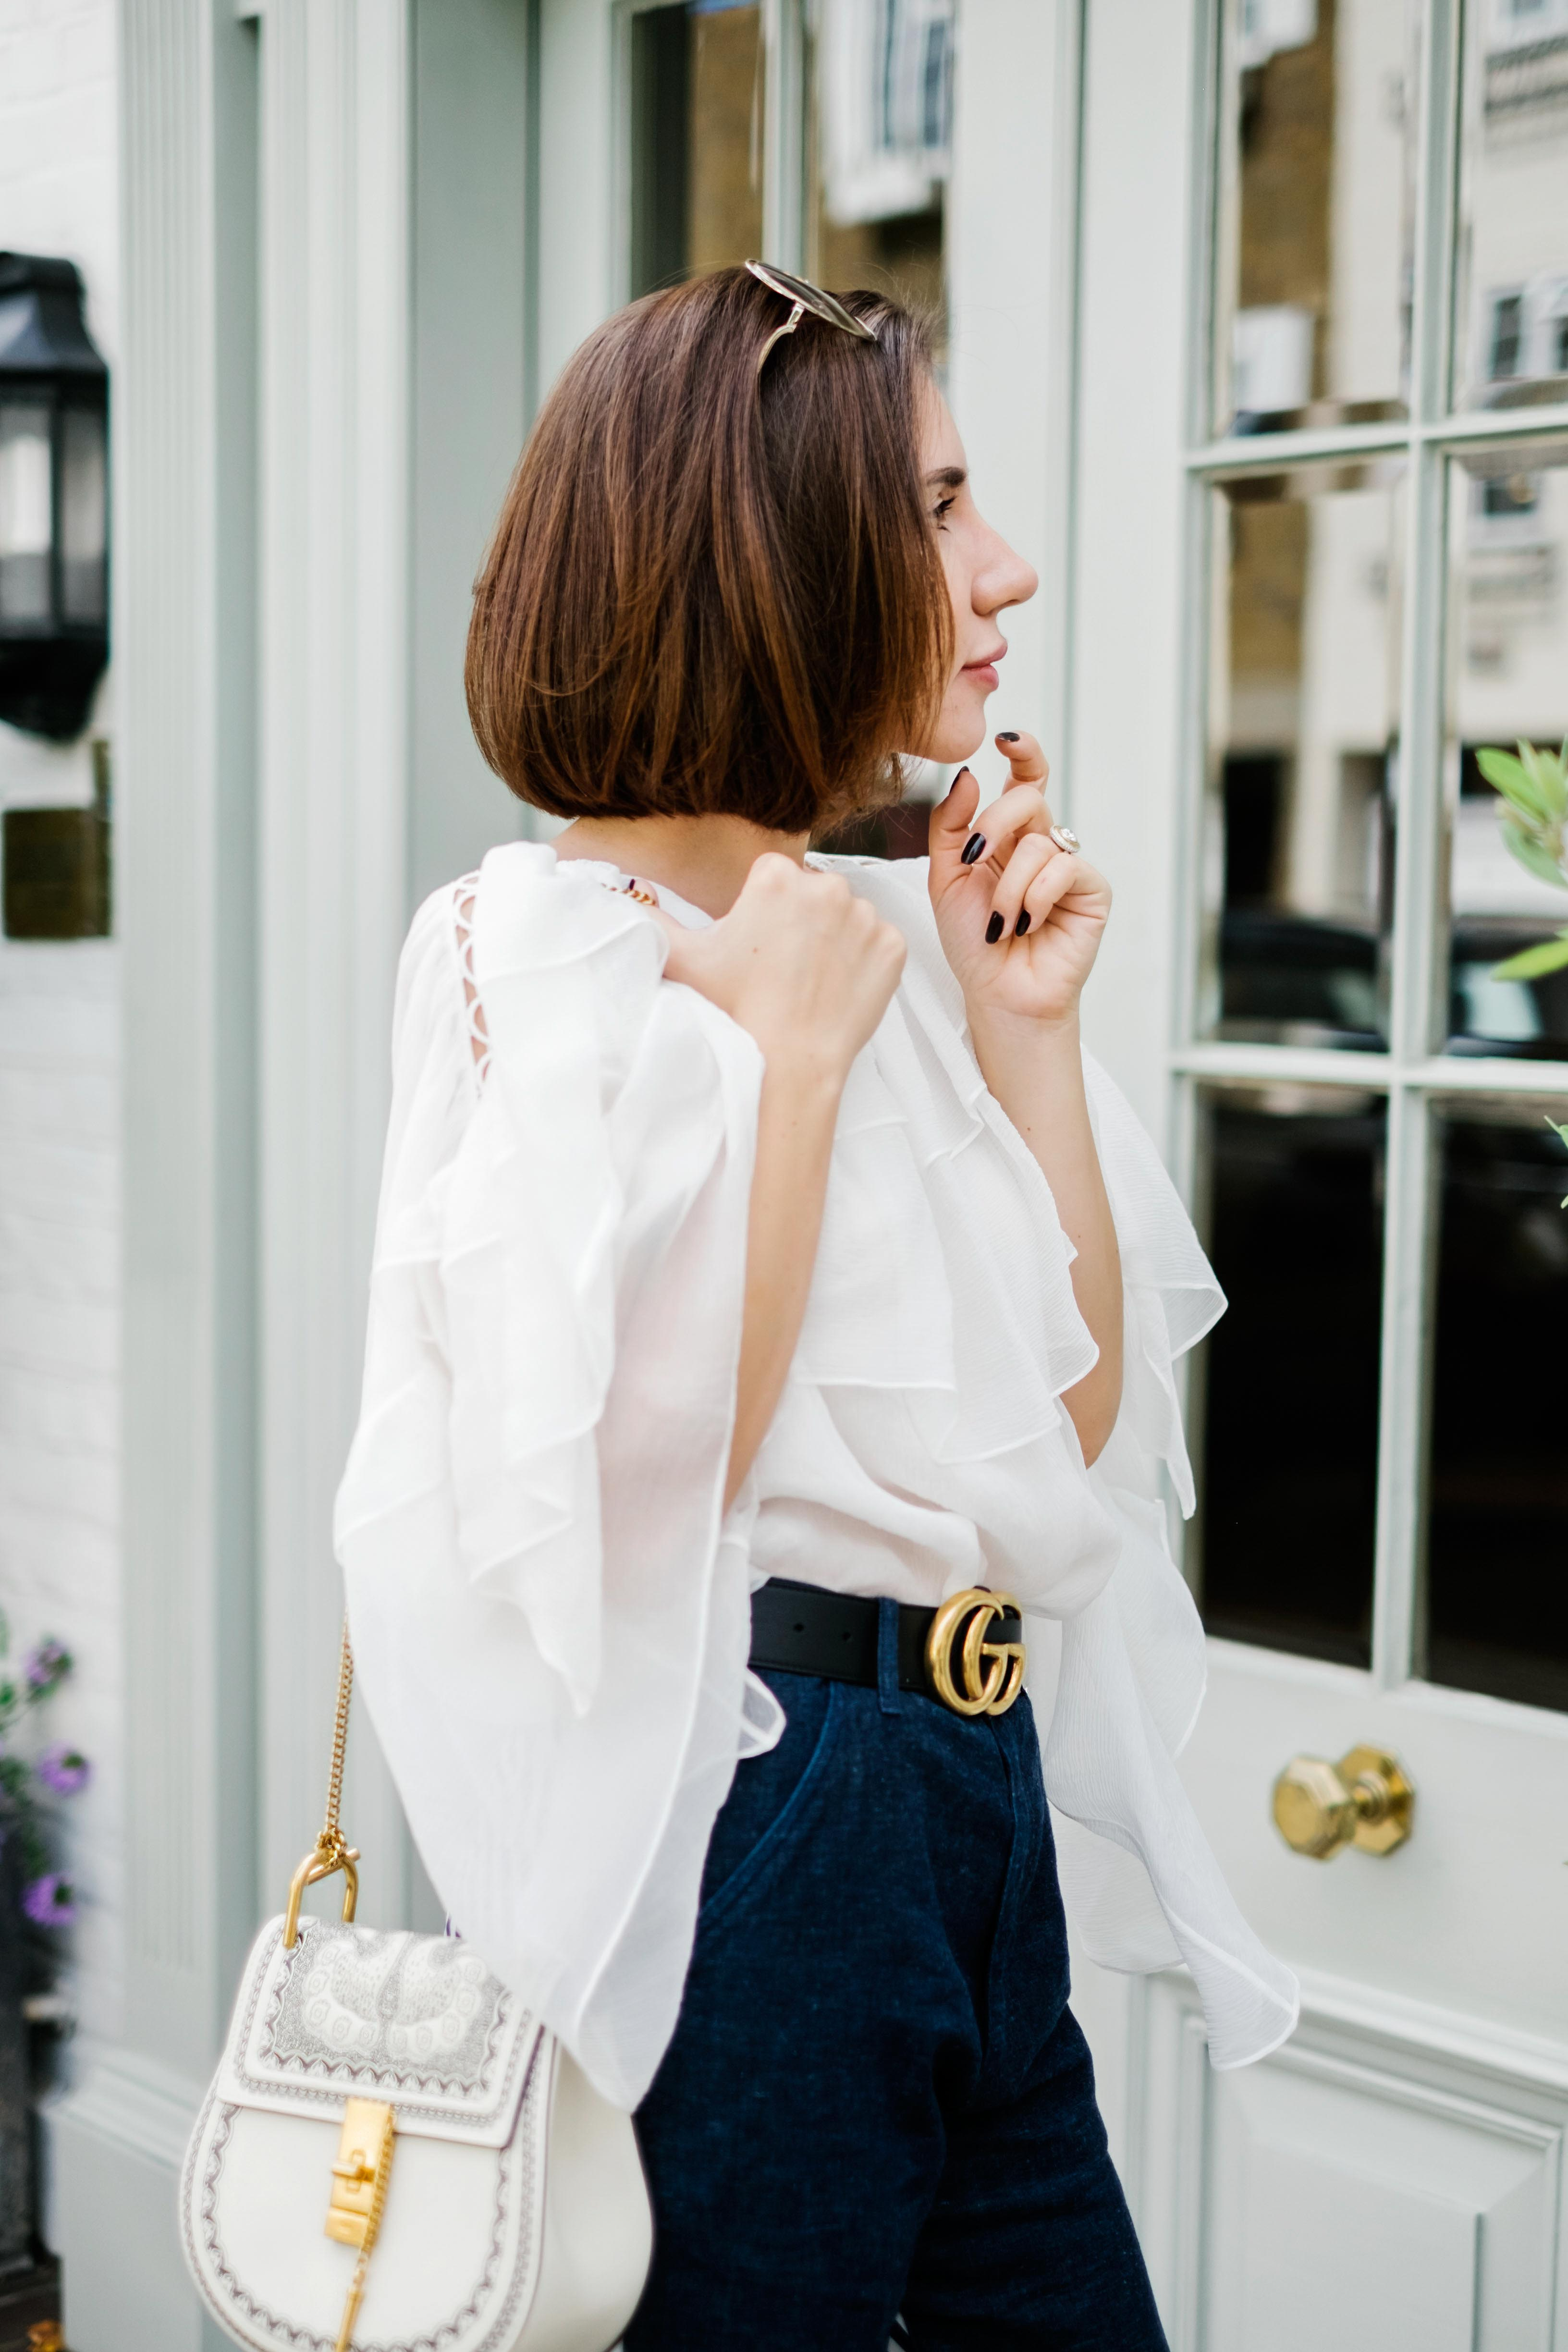 7 More Minutes. Fashion, travel and lifestyle blog by Alyona Gasimova. The Story Of The Chloe Blouse. How To Transition Your Summer Look For Fall. www.7moreminutes.com